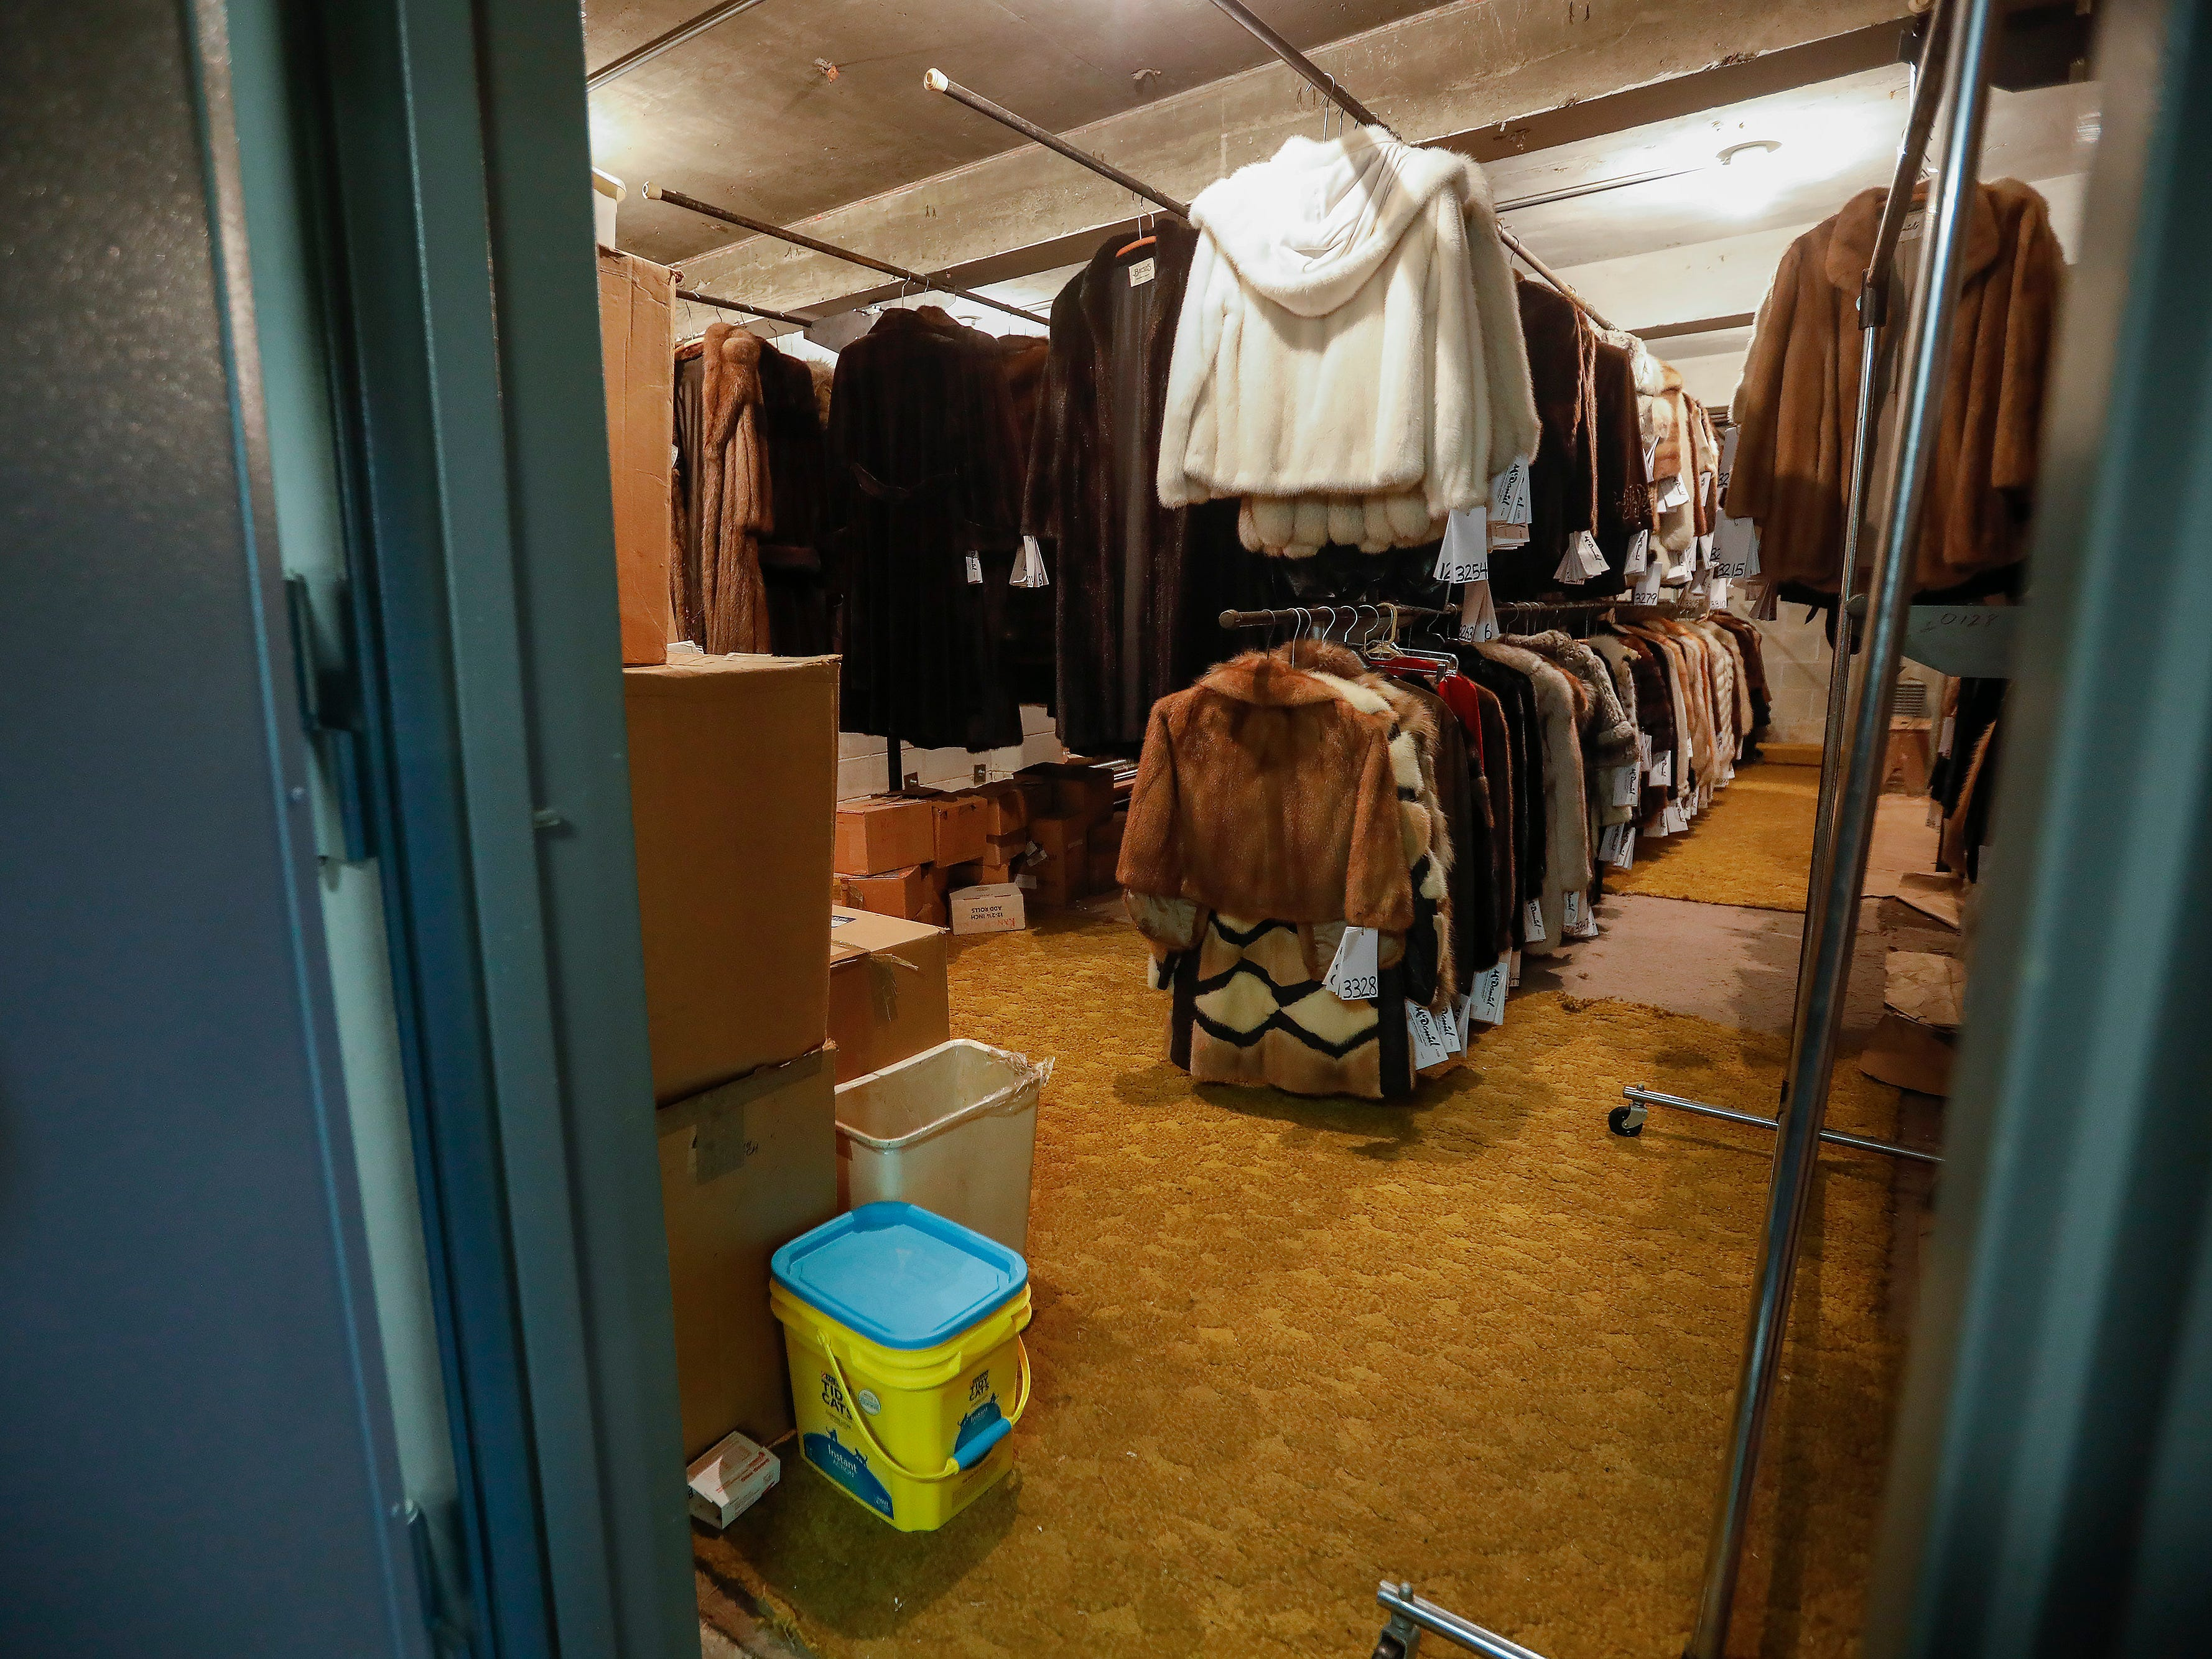 A look at some of the coats in storage at McDaniel Furs, located at 901 S. Glenstone Ave.